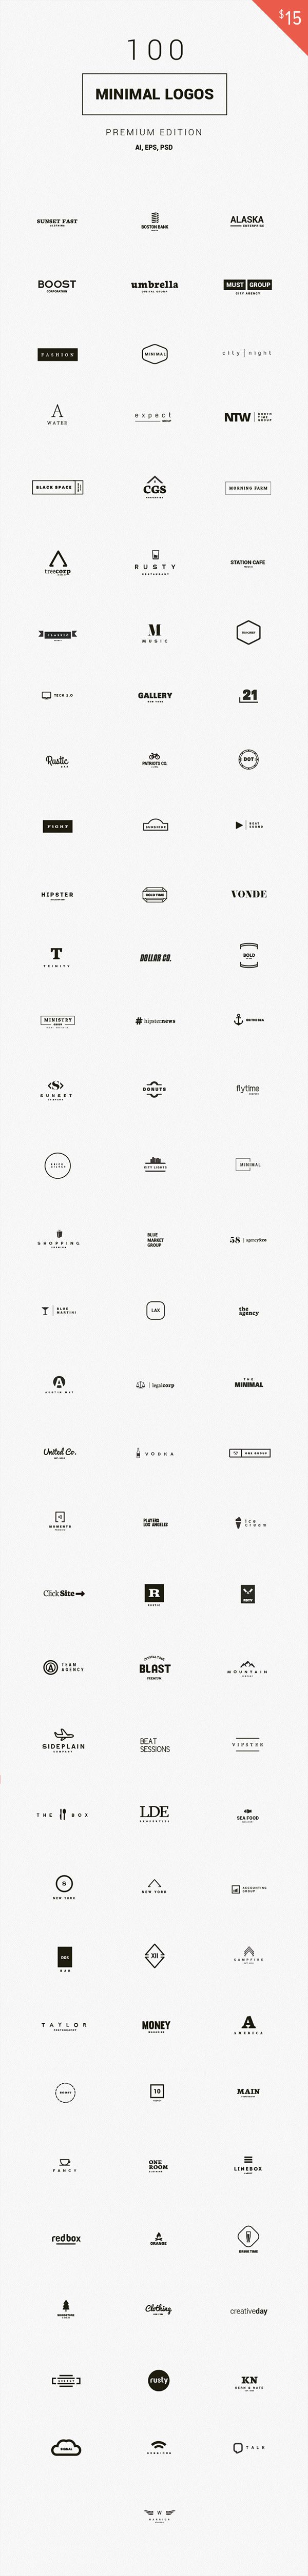 Get yourself an impressive collection of 100 minimal logo templates and use them for your branding projects...